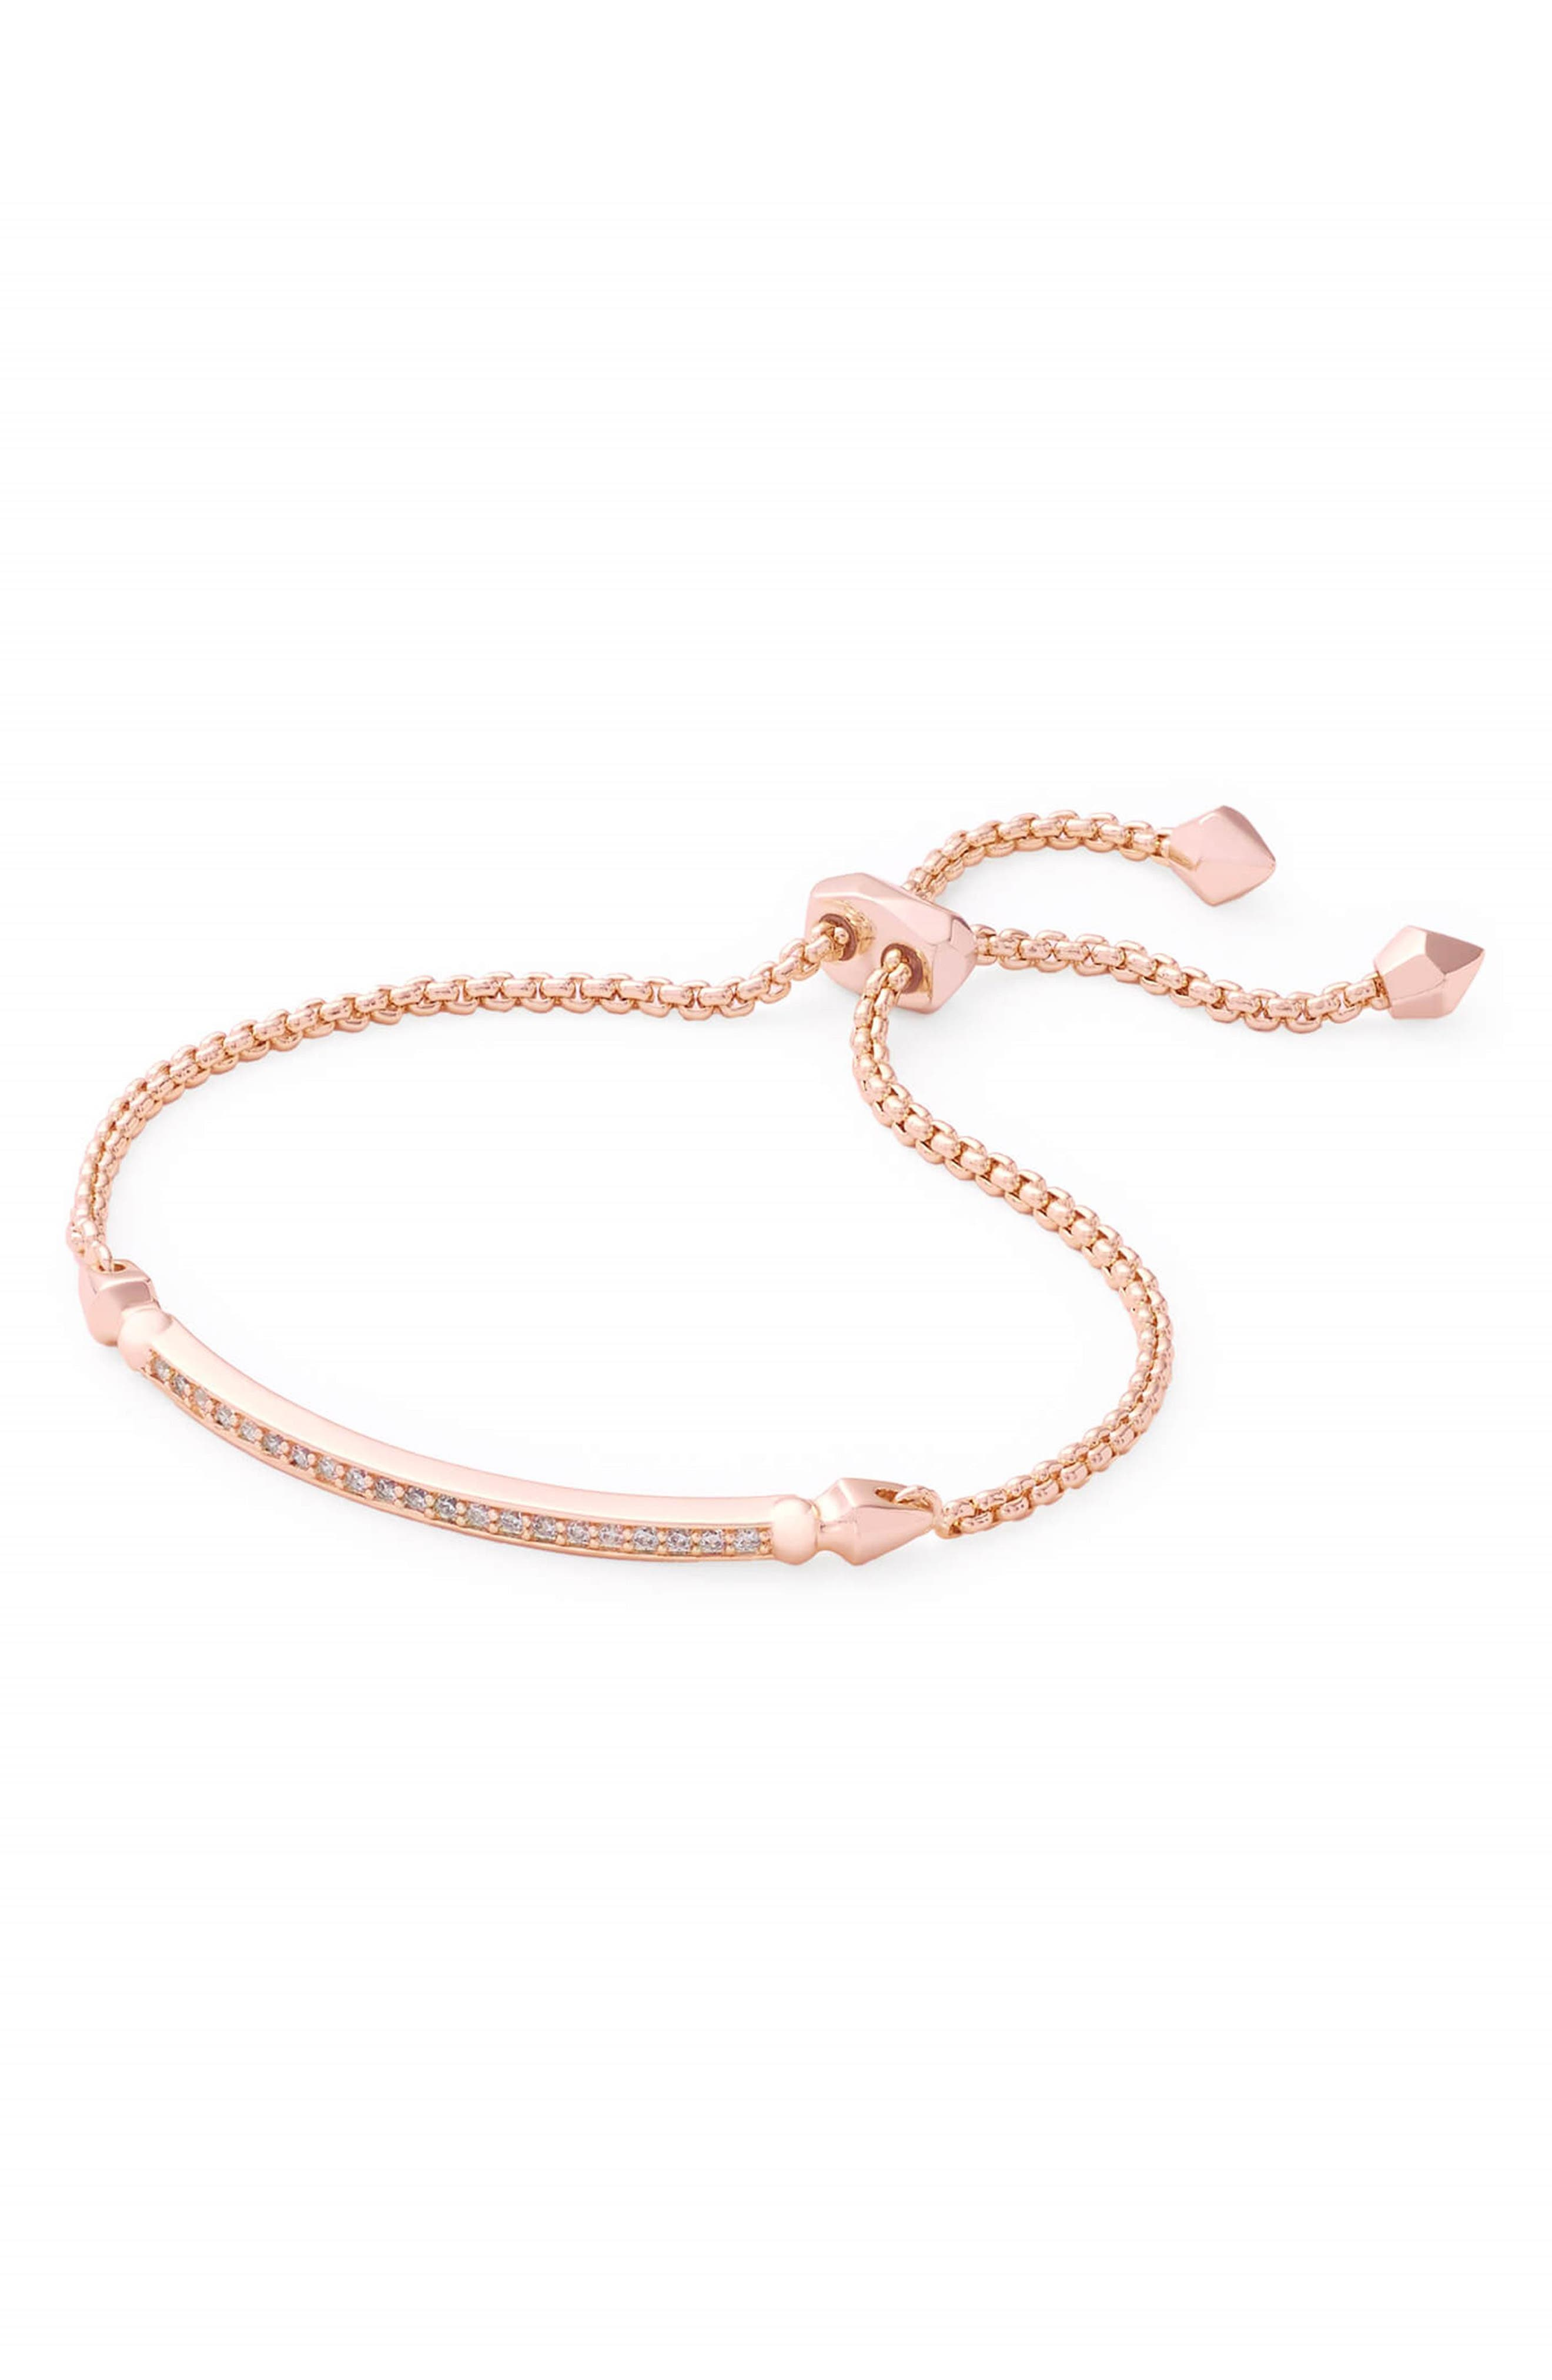 A highly adjustable keeper makes this slinky, sparkly bracelet all the more comfortable. Style Name: Kendra Scott Ott Friendship Bracelet. Style Number: 5381158. Available in stores.